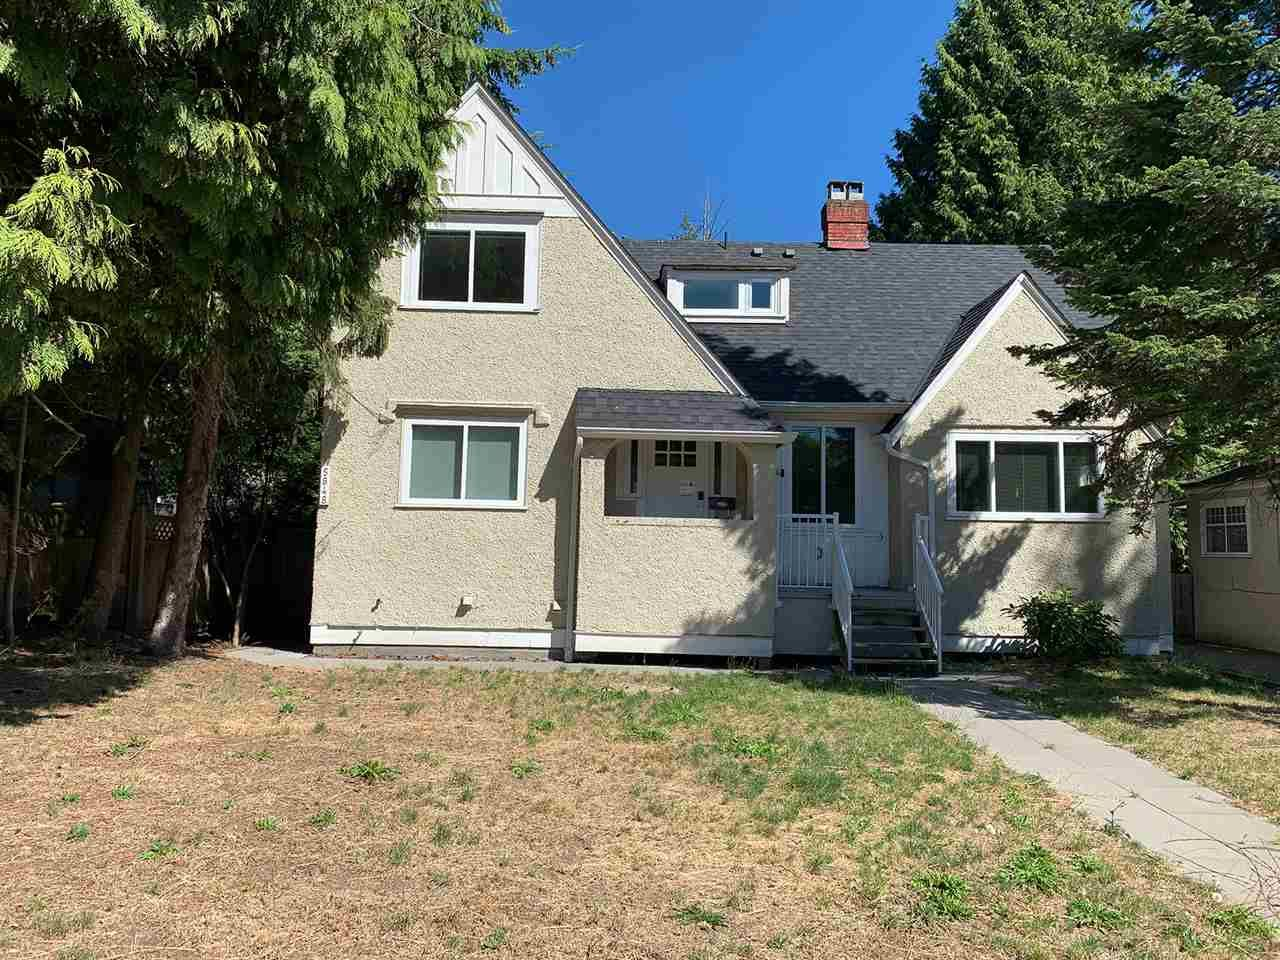 Main Photo: 5850 GRANVILLE Street in Vancouver: South Granville House for sale (Vancouver West)  : MLS®# R2523133